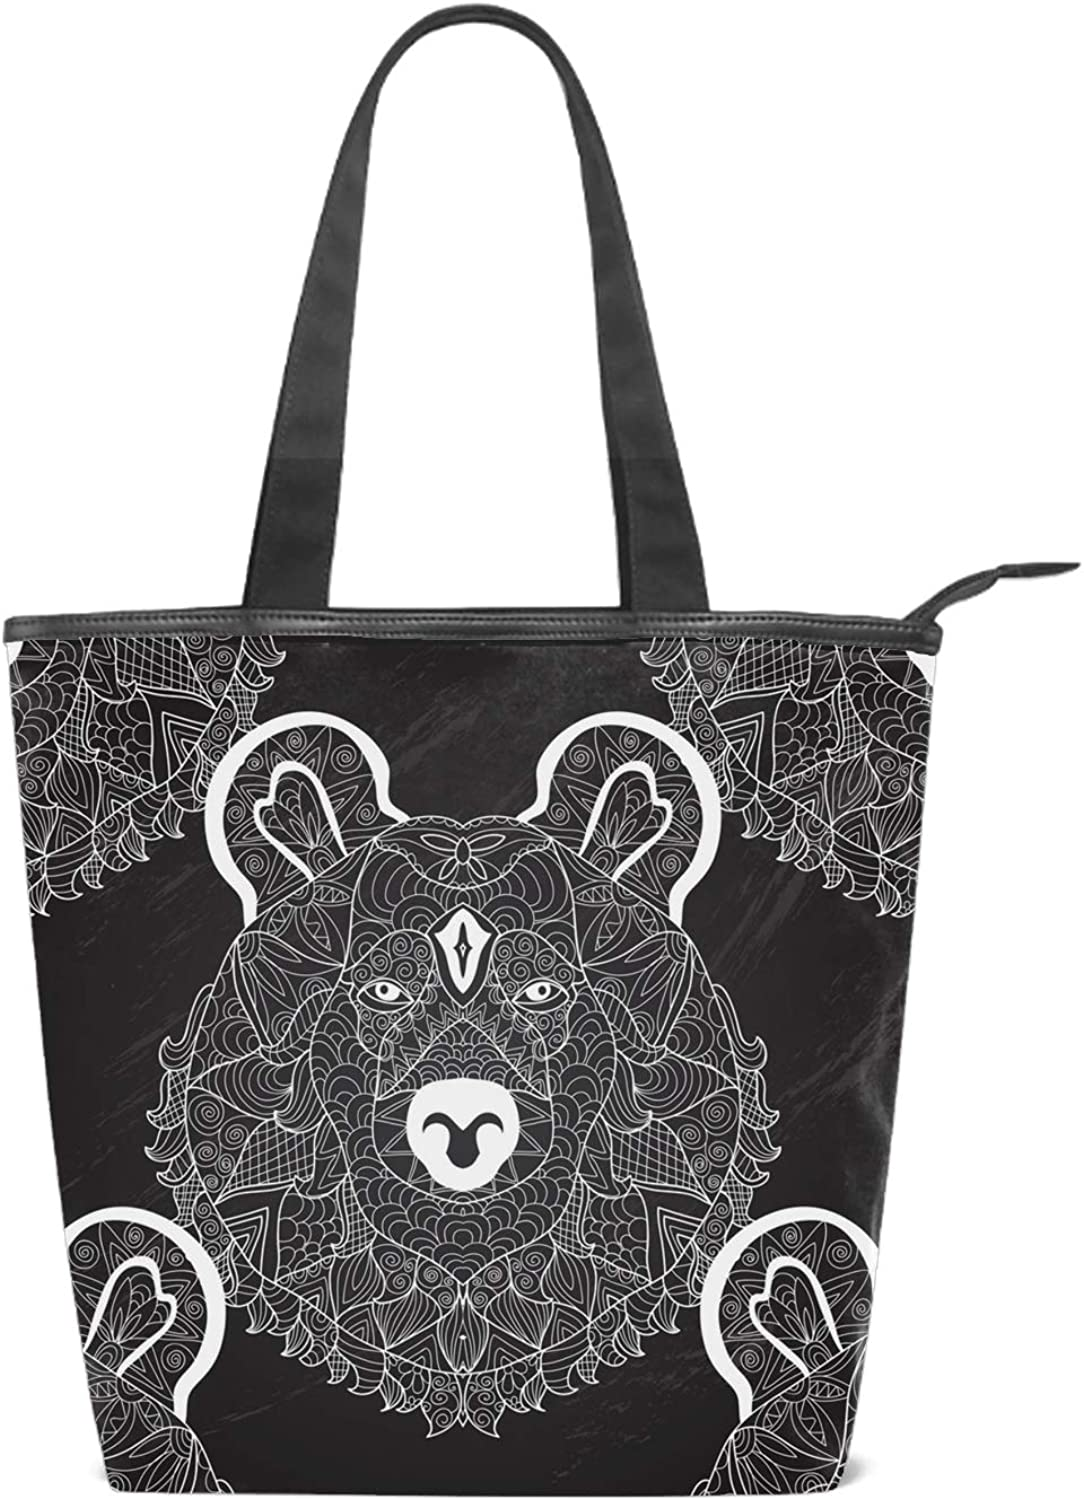 Shopping Bag Couples Dragonfly Nacklace Grocery Canvas Tote Bags